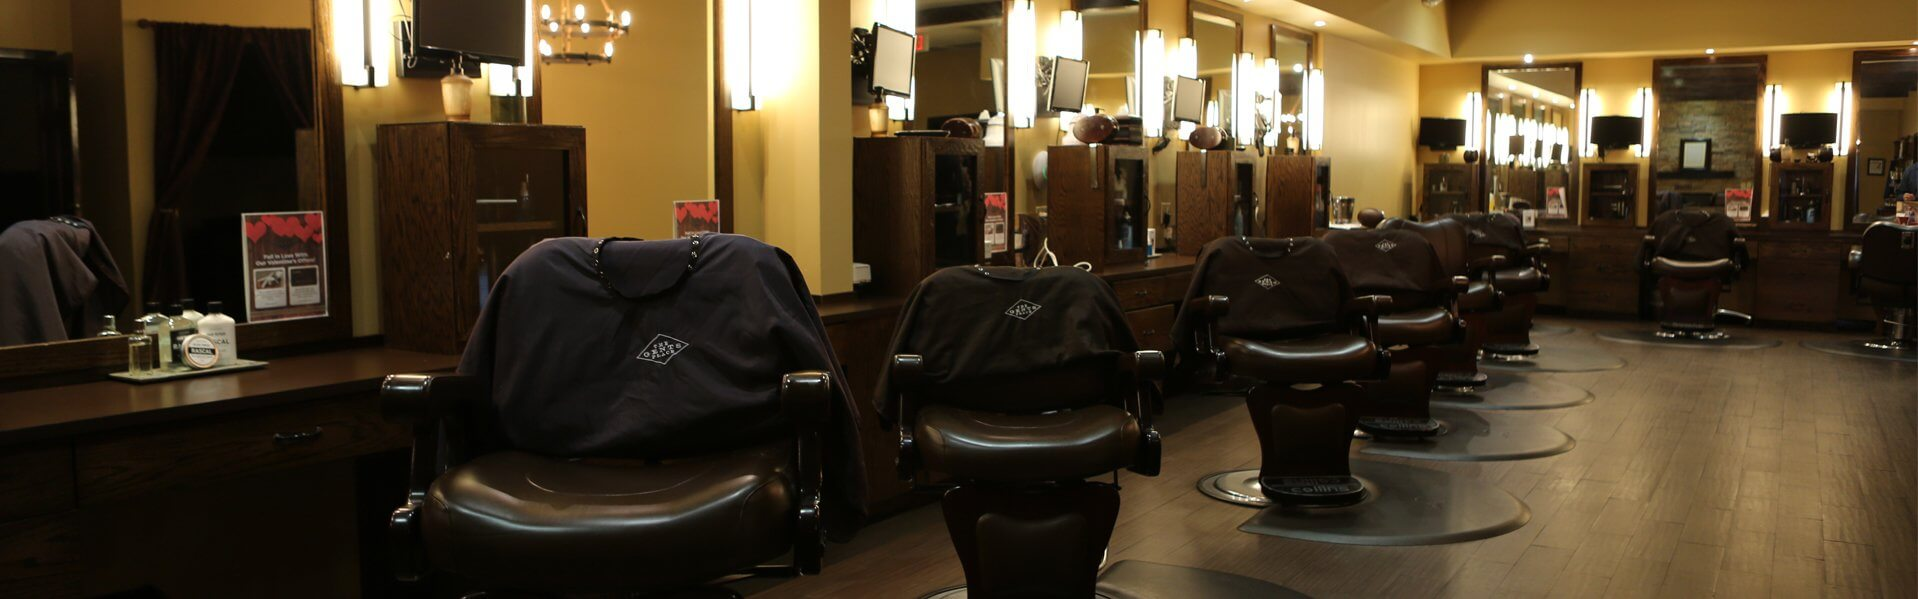 The Gents Place - Mens Haircuts Near Me and Barber Shop in Dallas TX Uptown